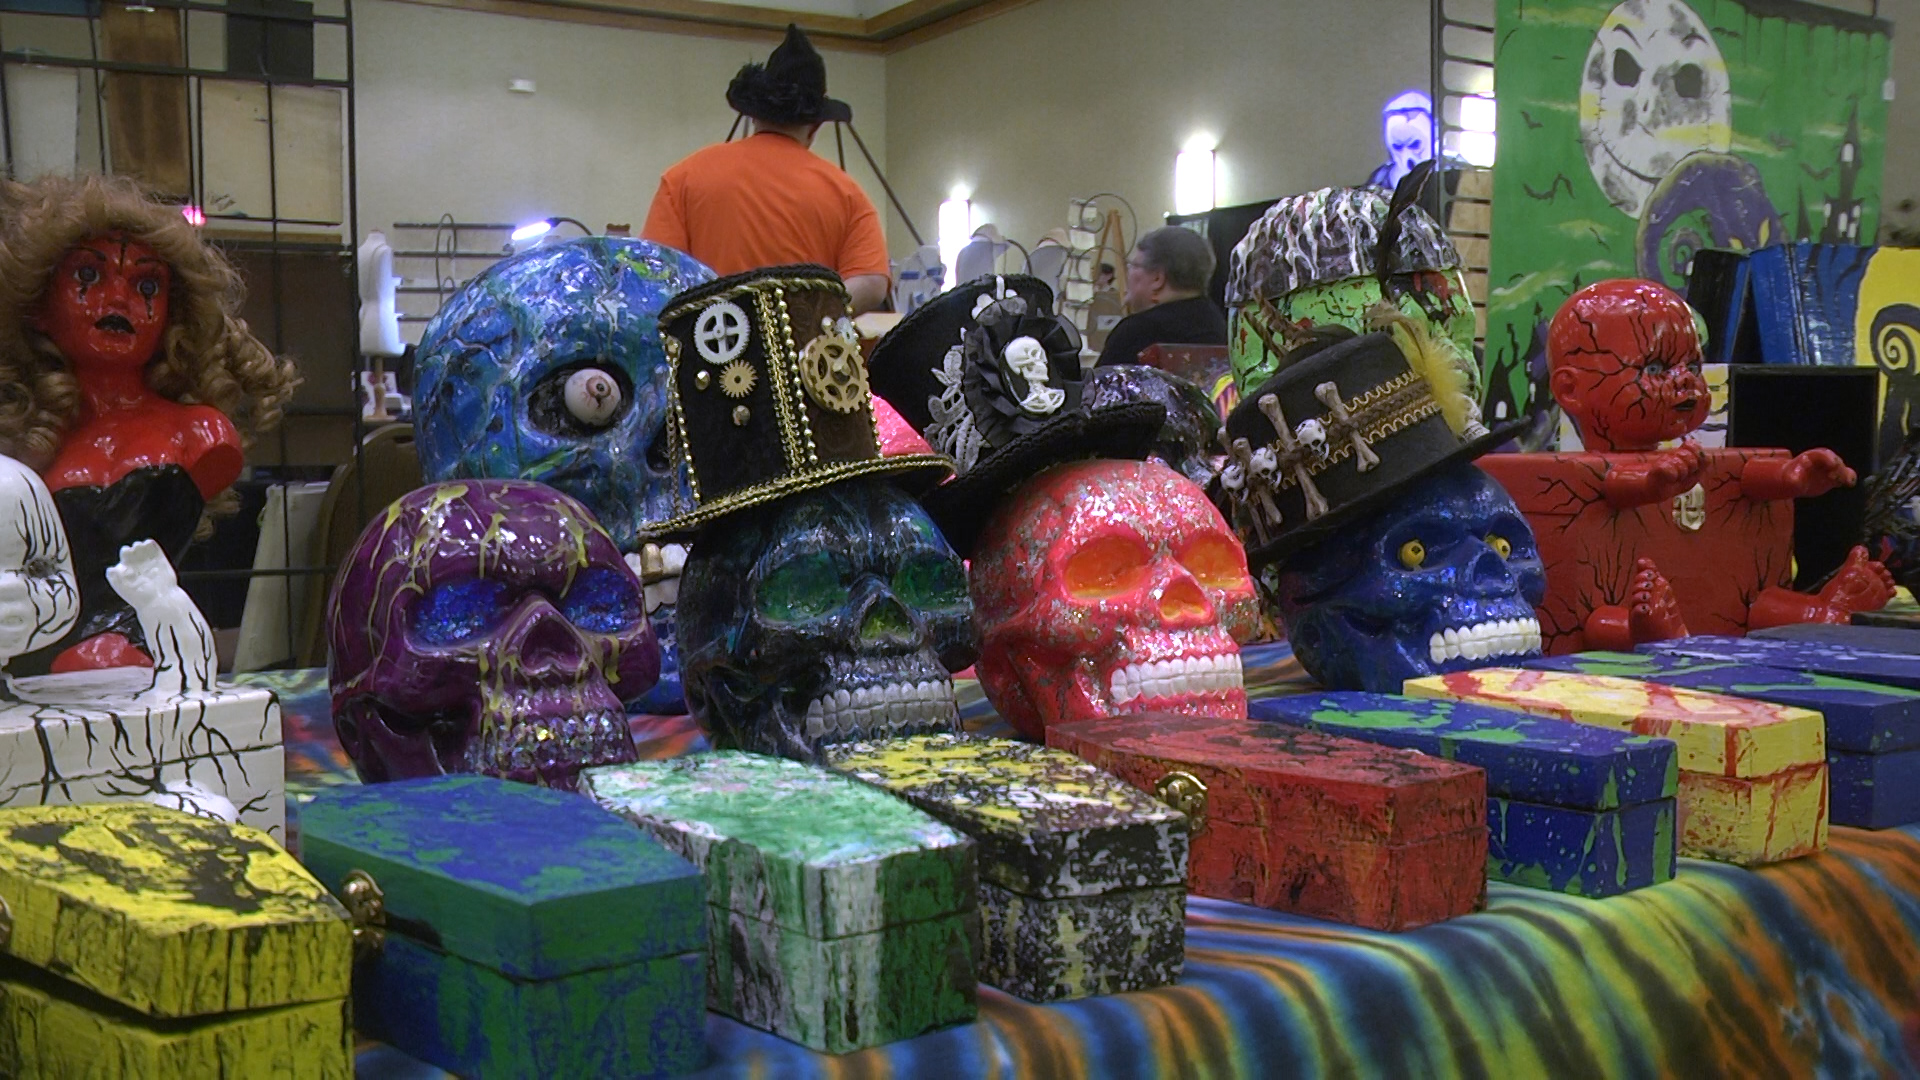 Several decorated skulls and coffins are on display